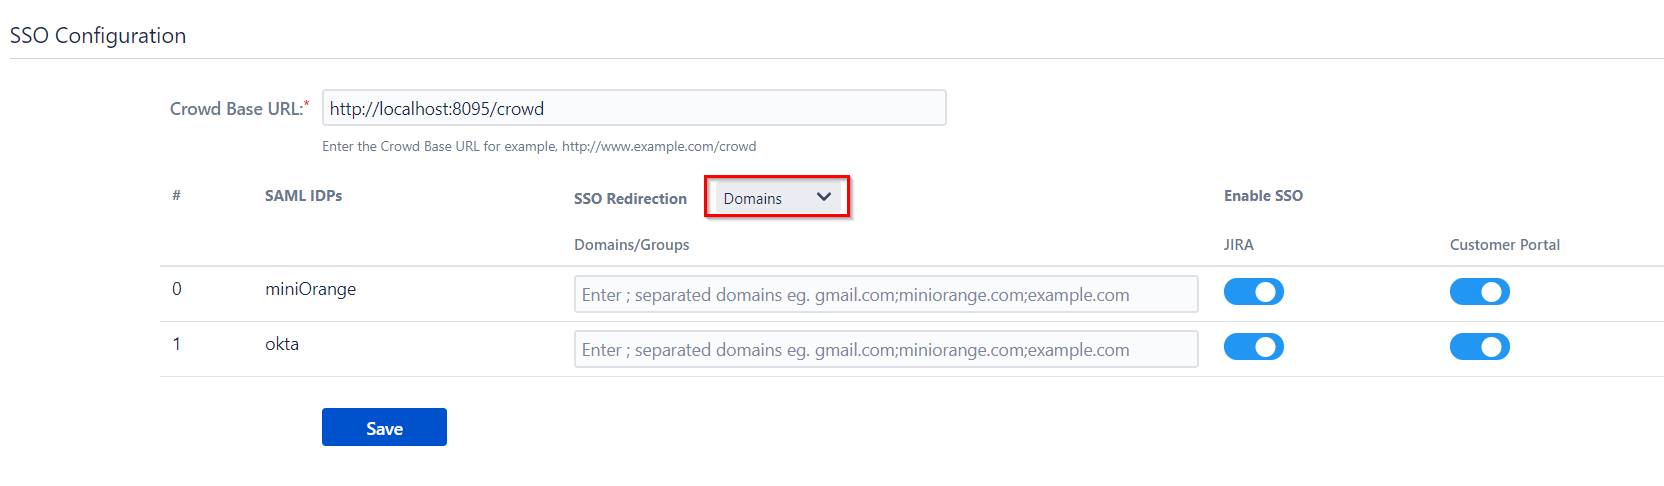 SAML Single Sign On (SSO) Connector for Crowd and Jira, Domain Mapping